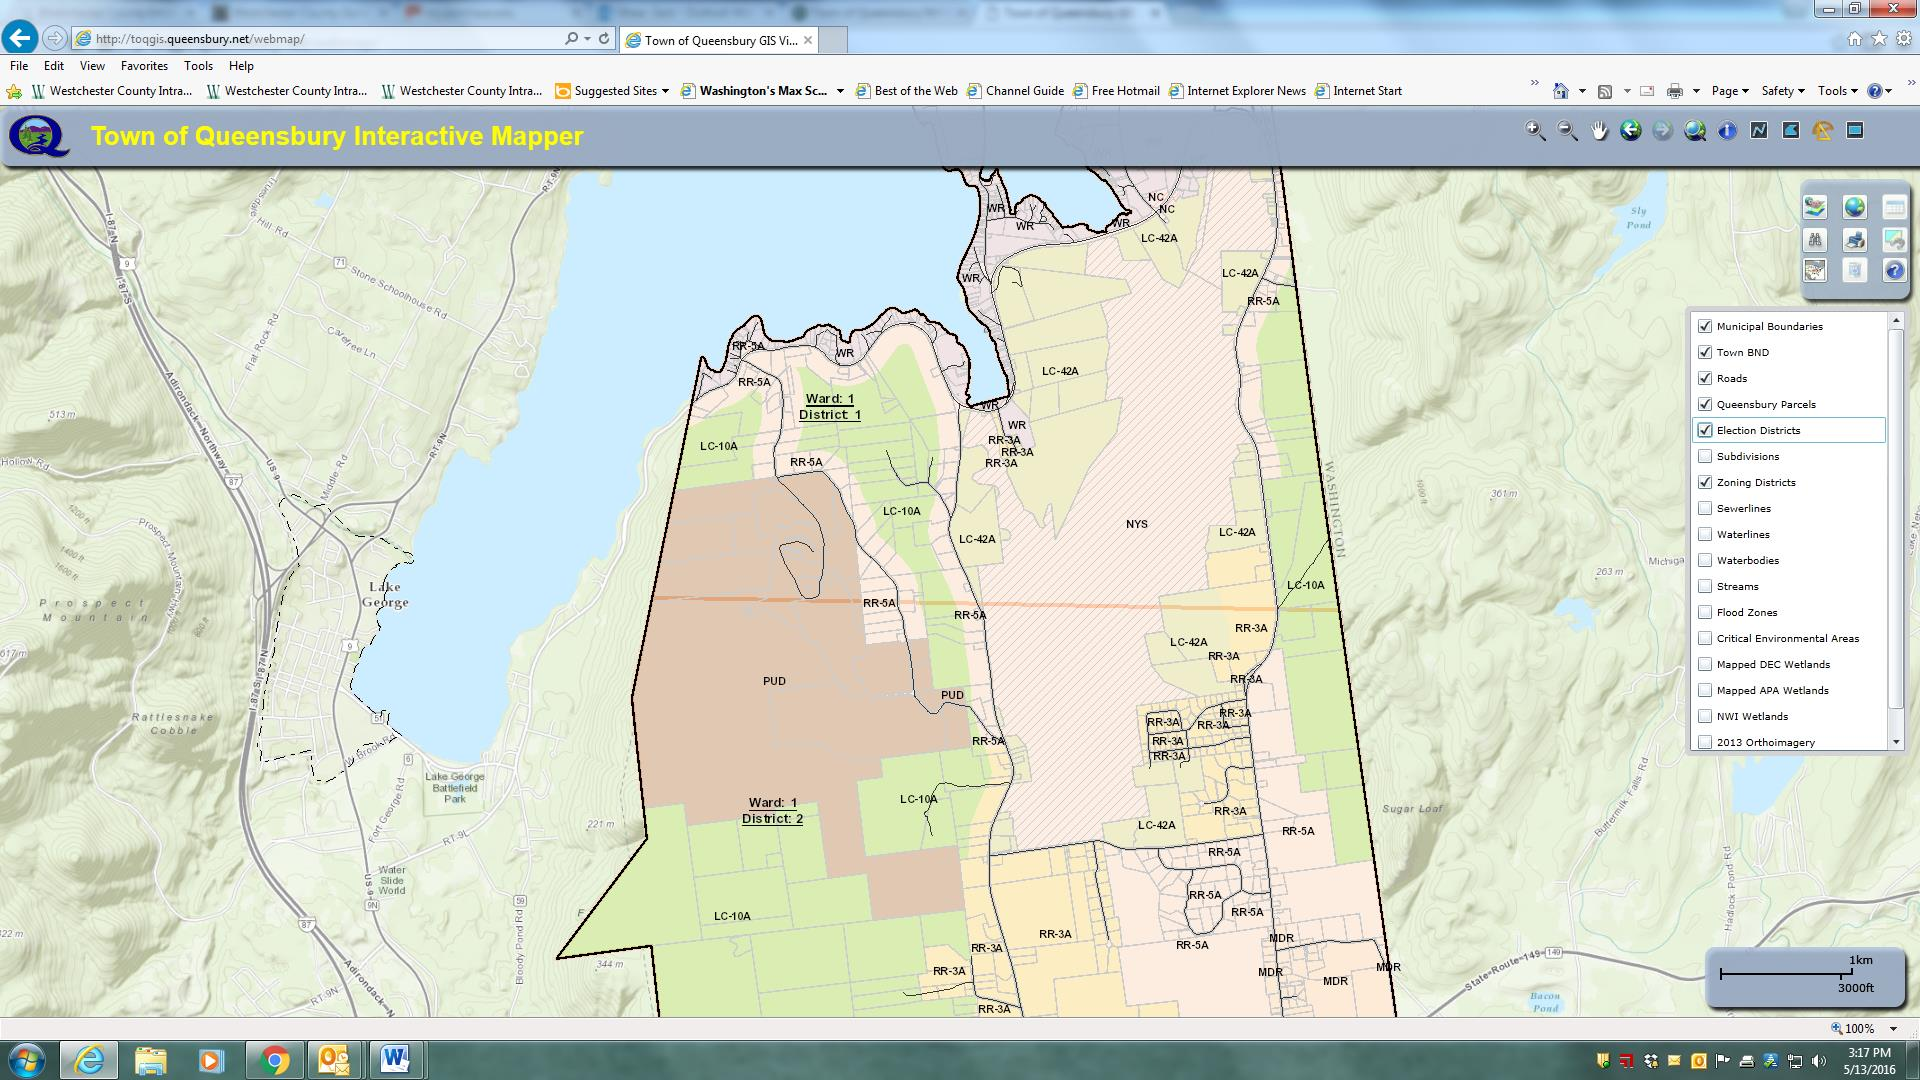 Parts of the Town of Queensbury is actually within the Adirondack Park and therefore subject to stringent land use regulations. This image highlights zoning districts on the southeastern shore of Lake George – within the park boundaries.